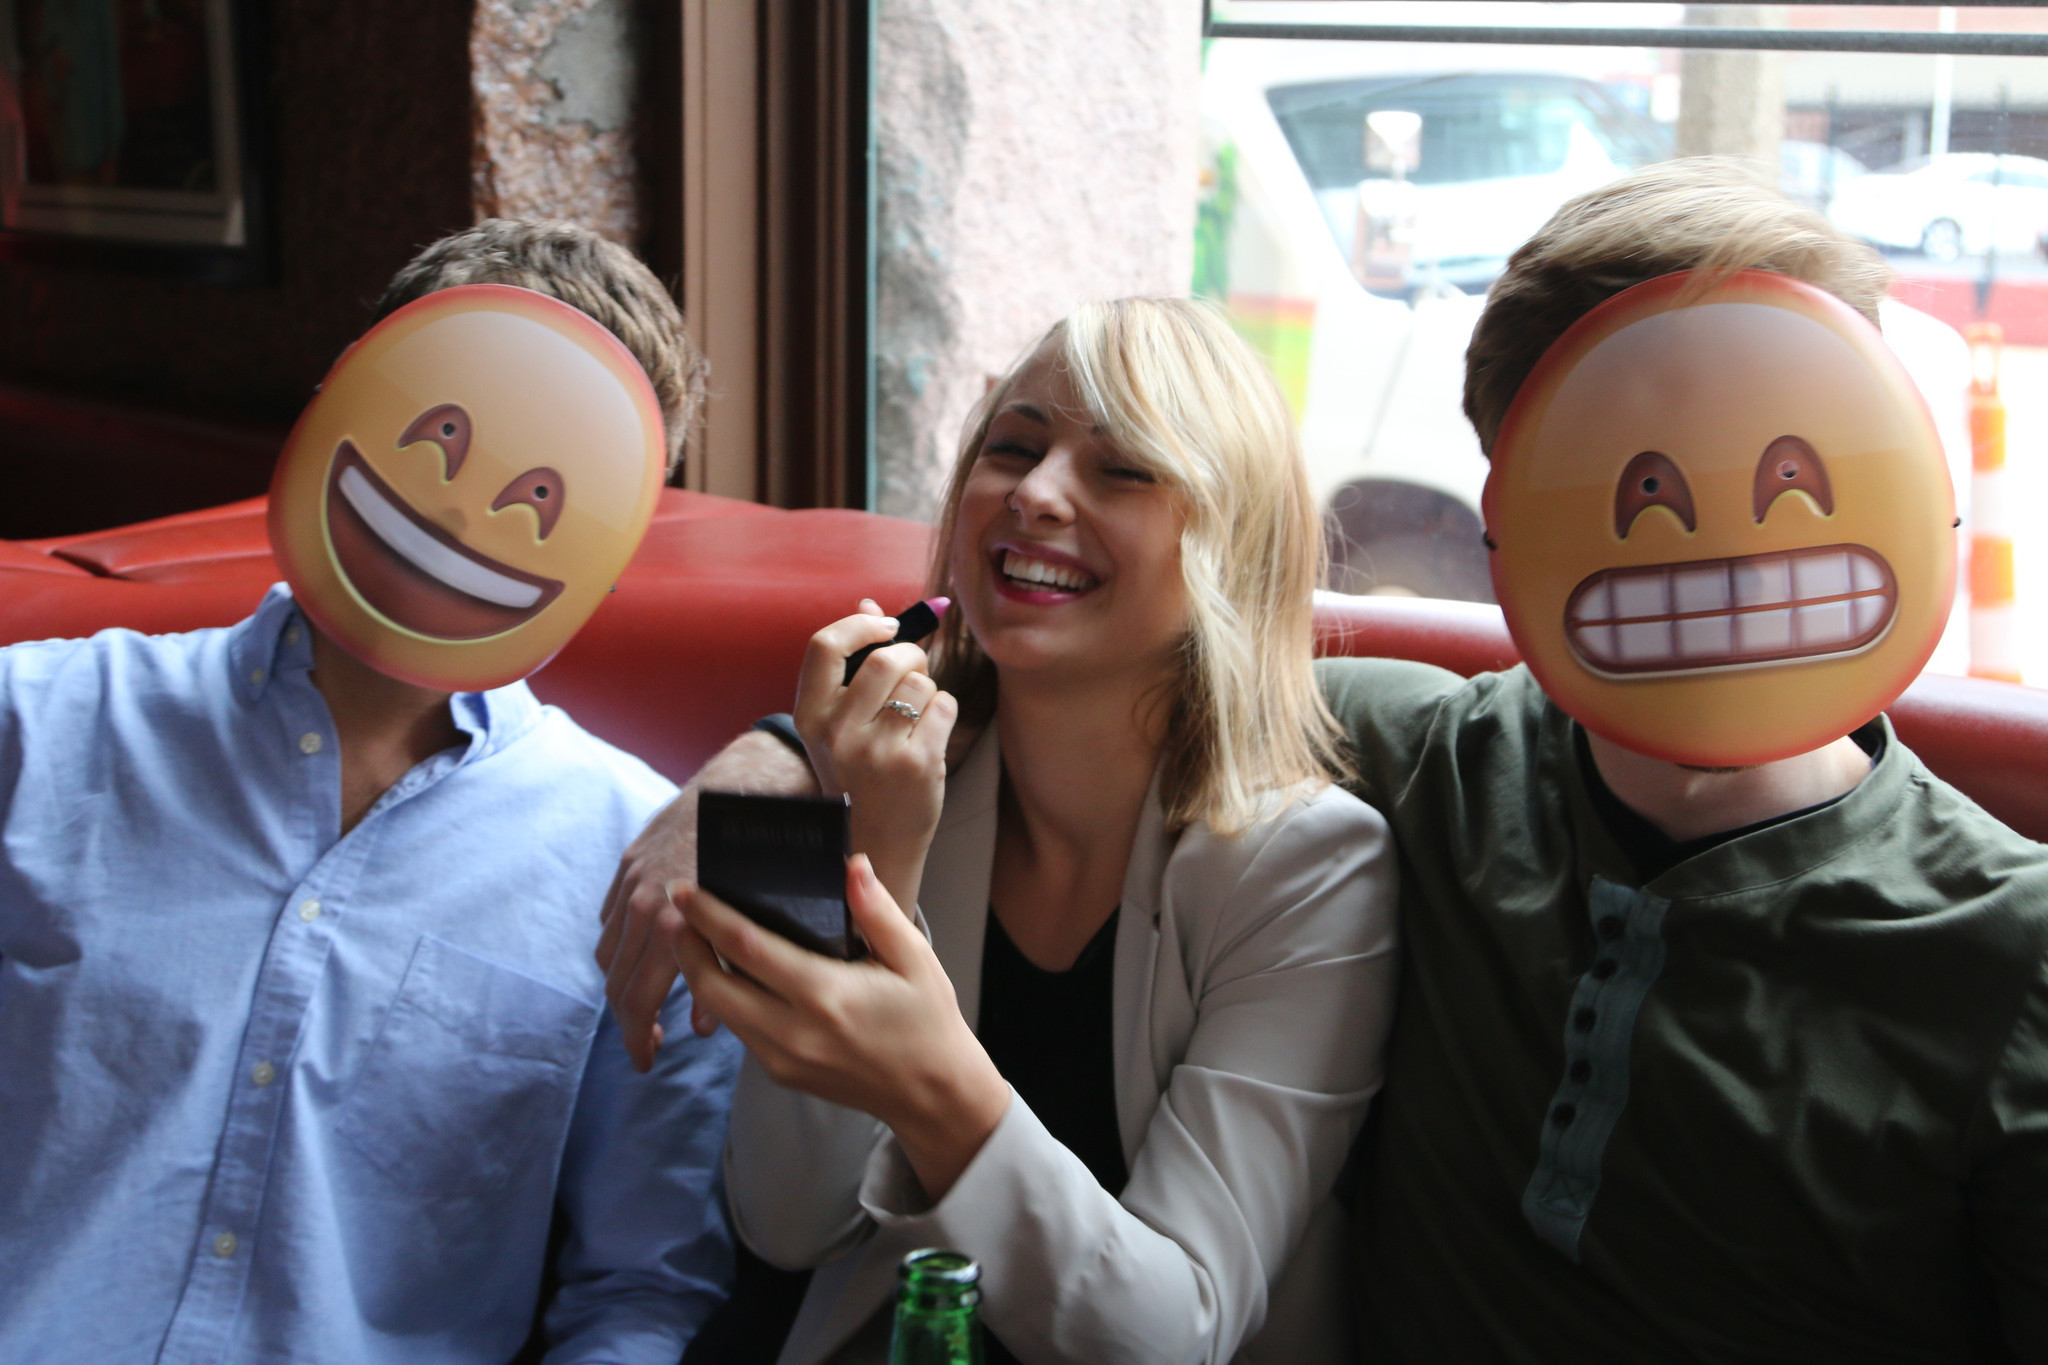 weird news: these emoji masks are the best halloween costumes $5 can buy